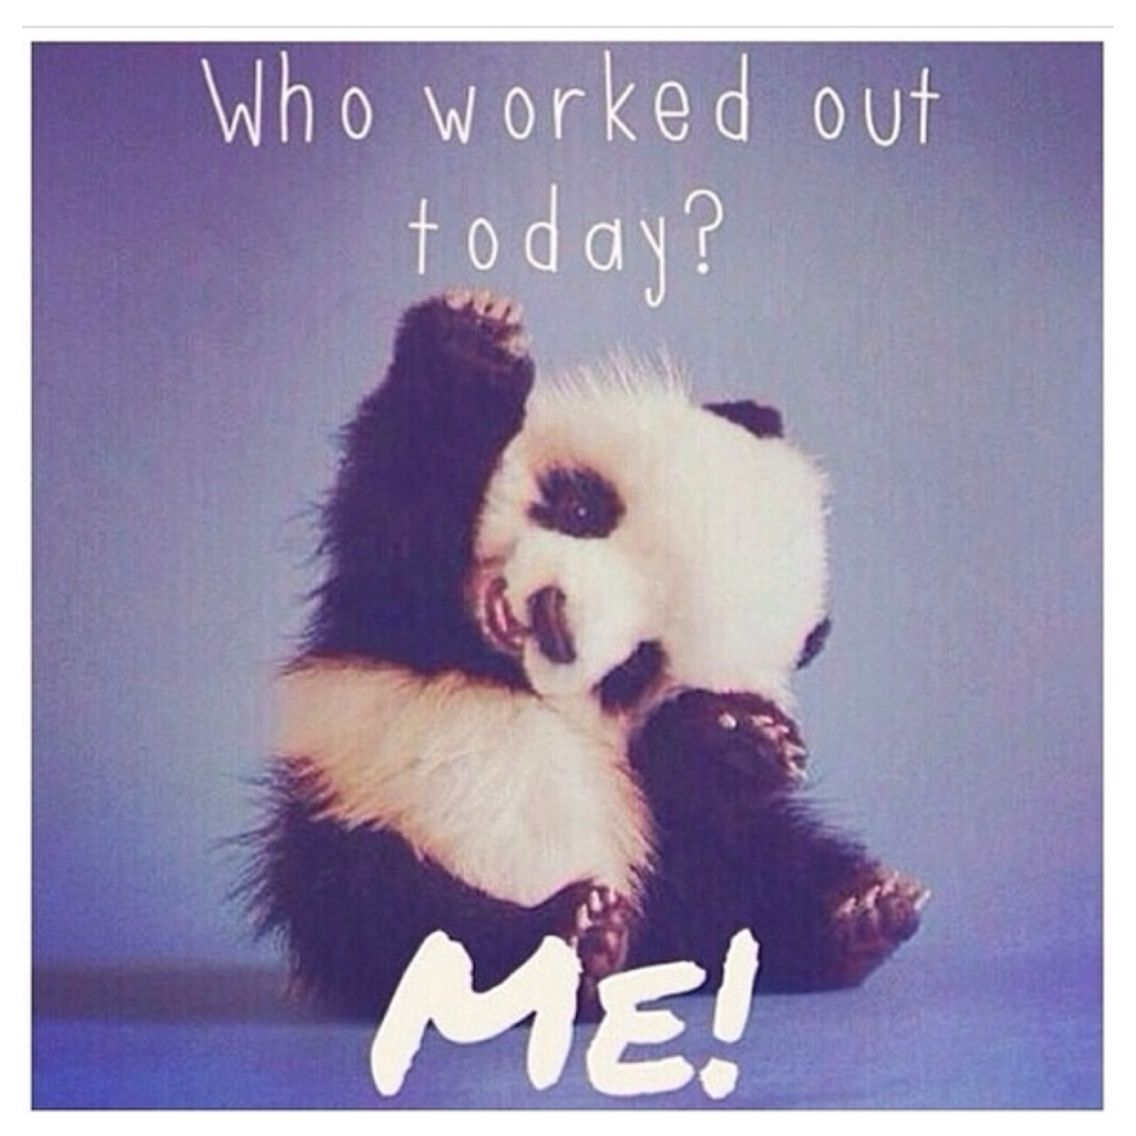 Who worked out today?